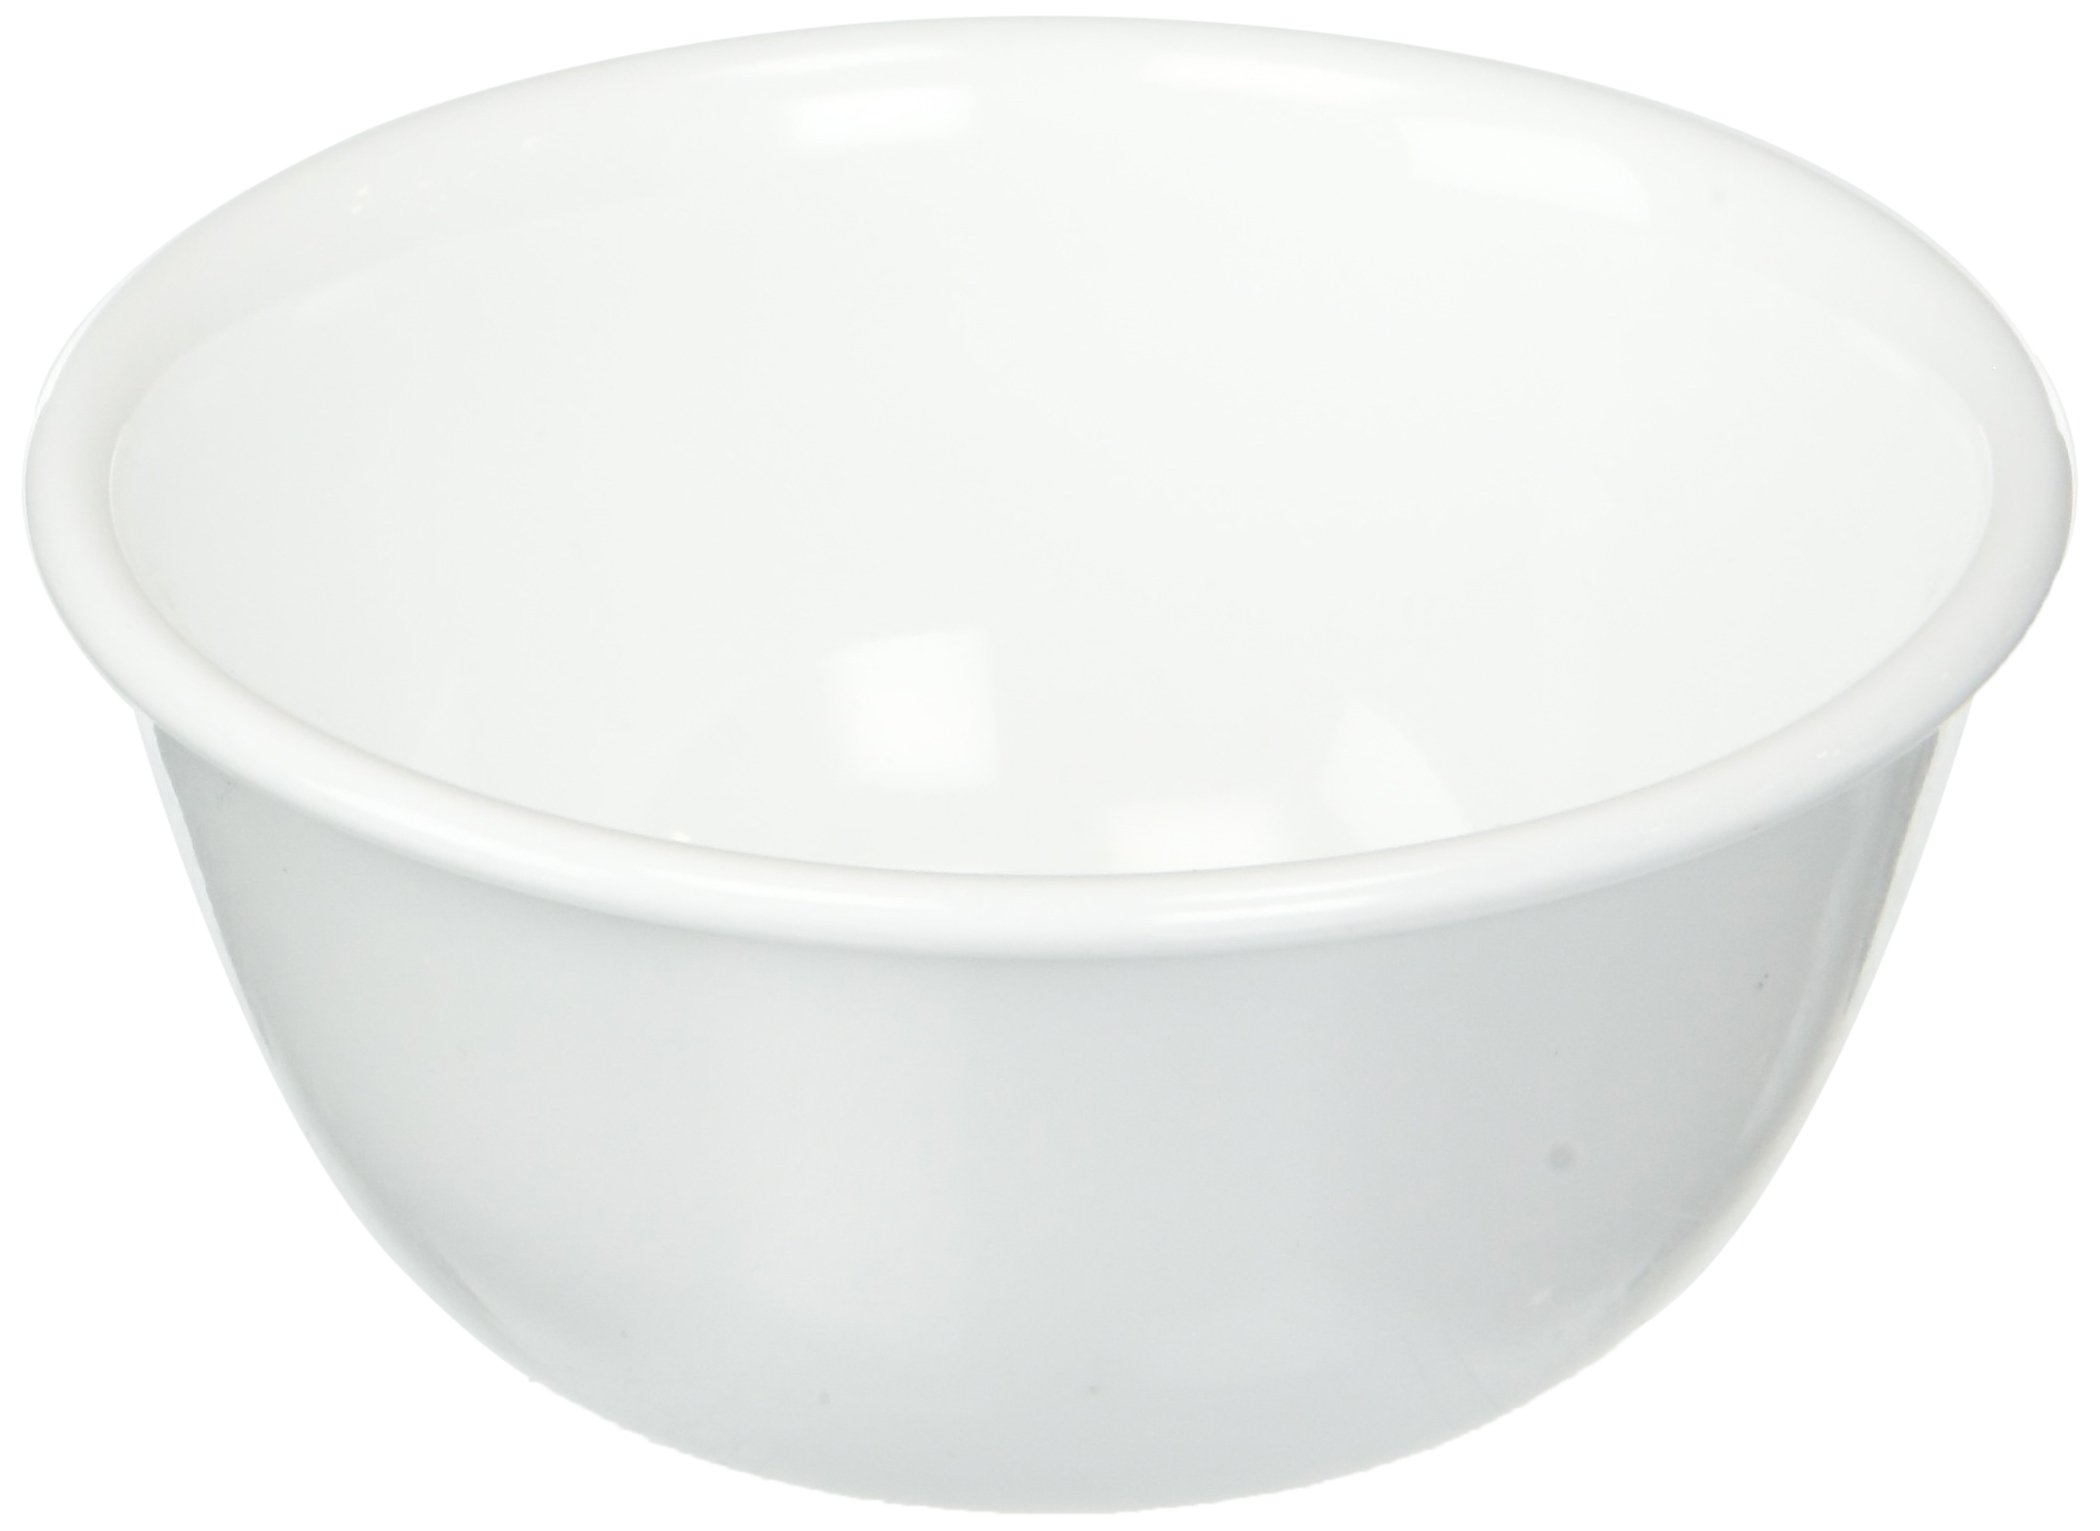 Corelle Livingware Winter Frost White 6-Oz Ramekin Bowl (Set of 4)